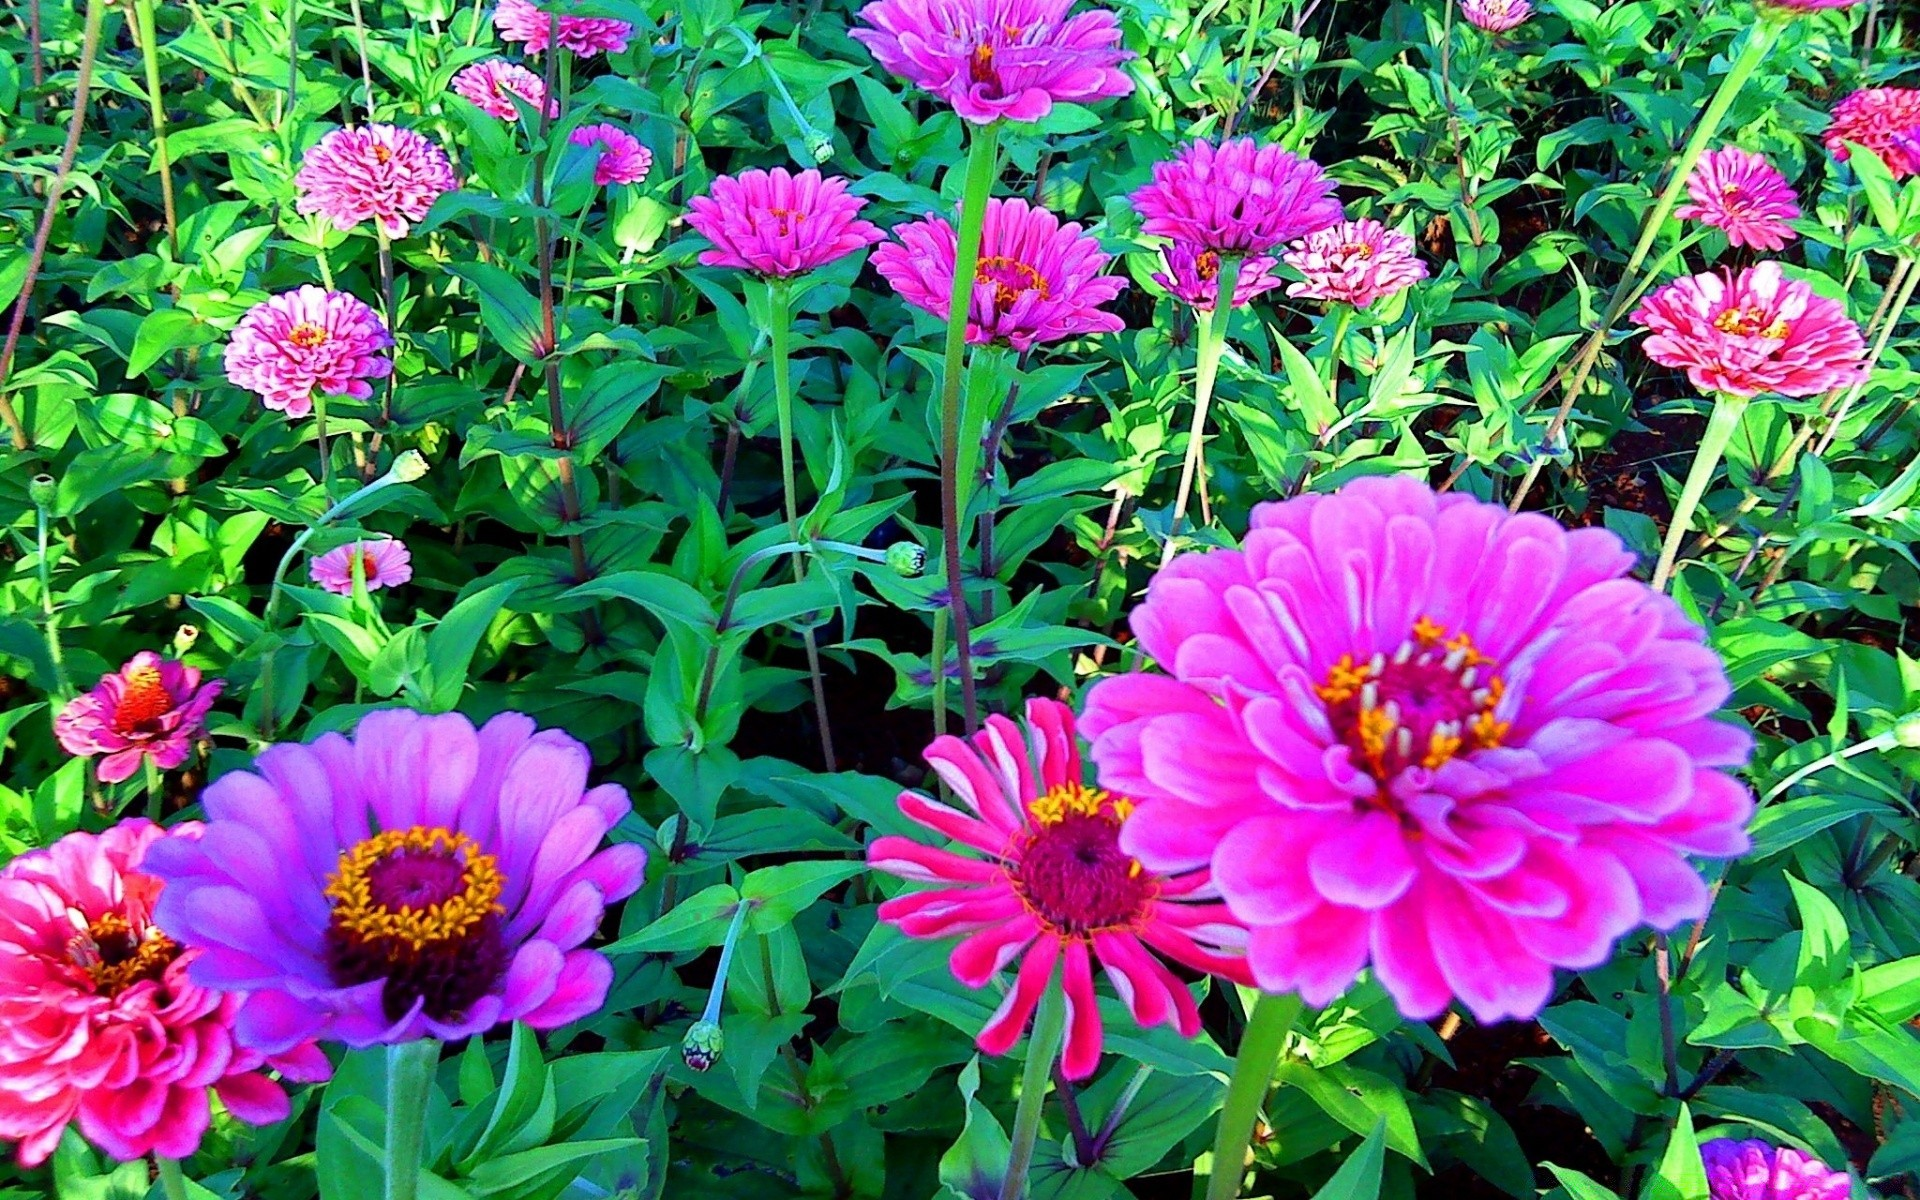 flowers flower garden nature flora summer floral blooming petal leaf color bright growth season botanical vibrant beautiful park dahlia close-up